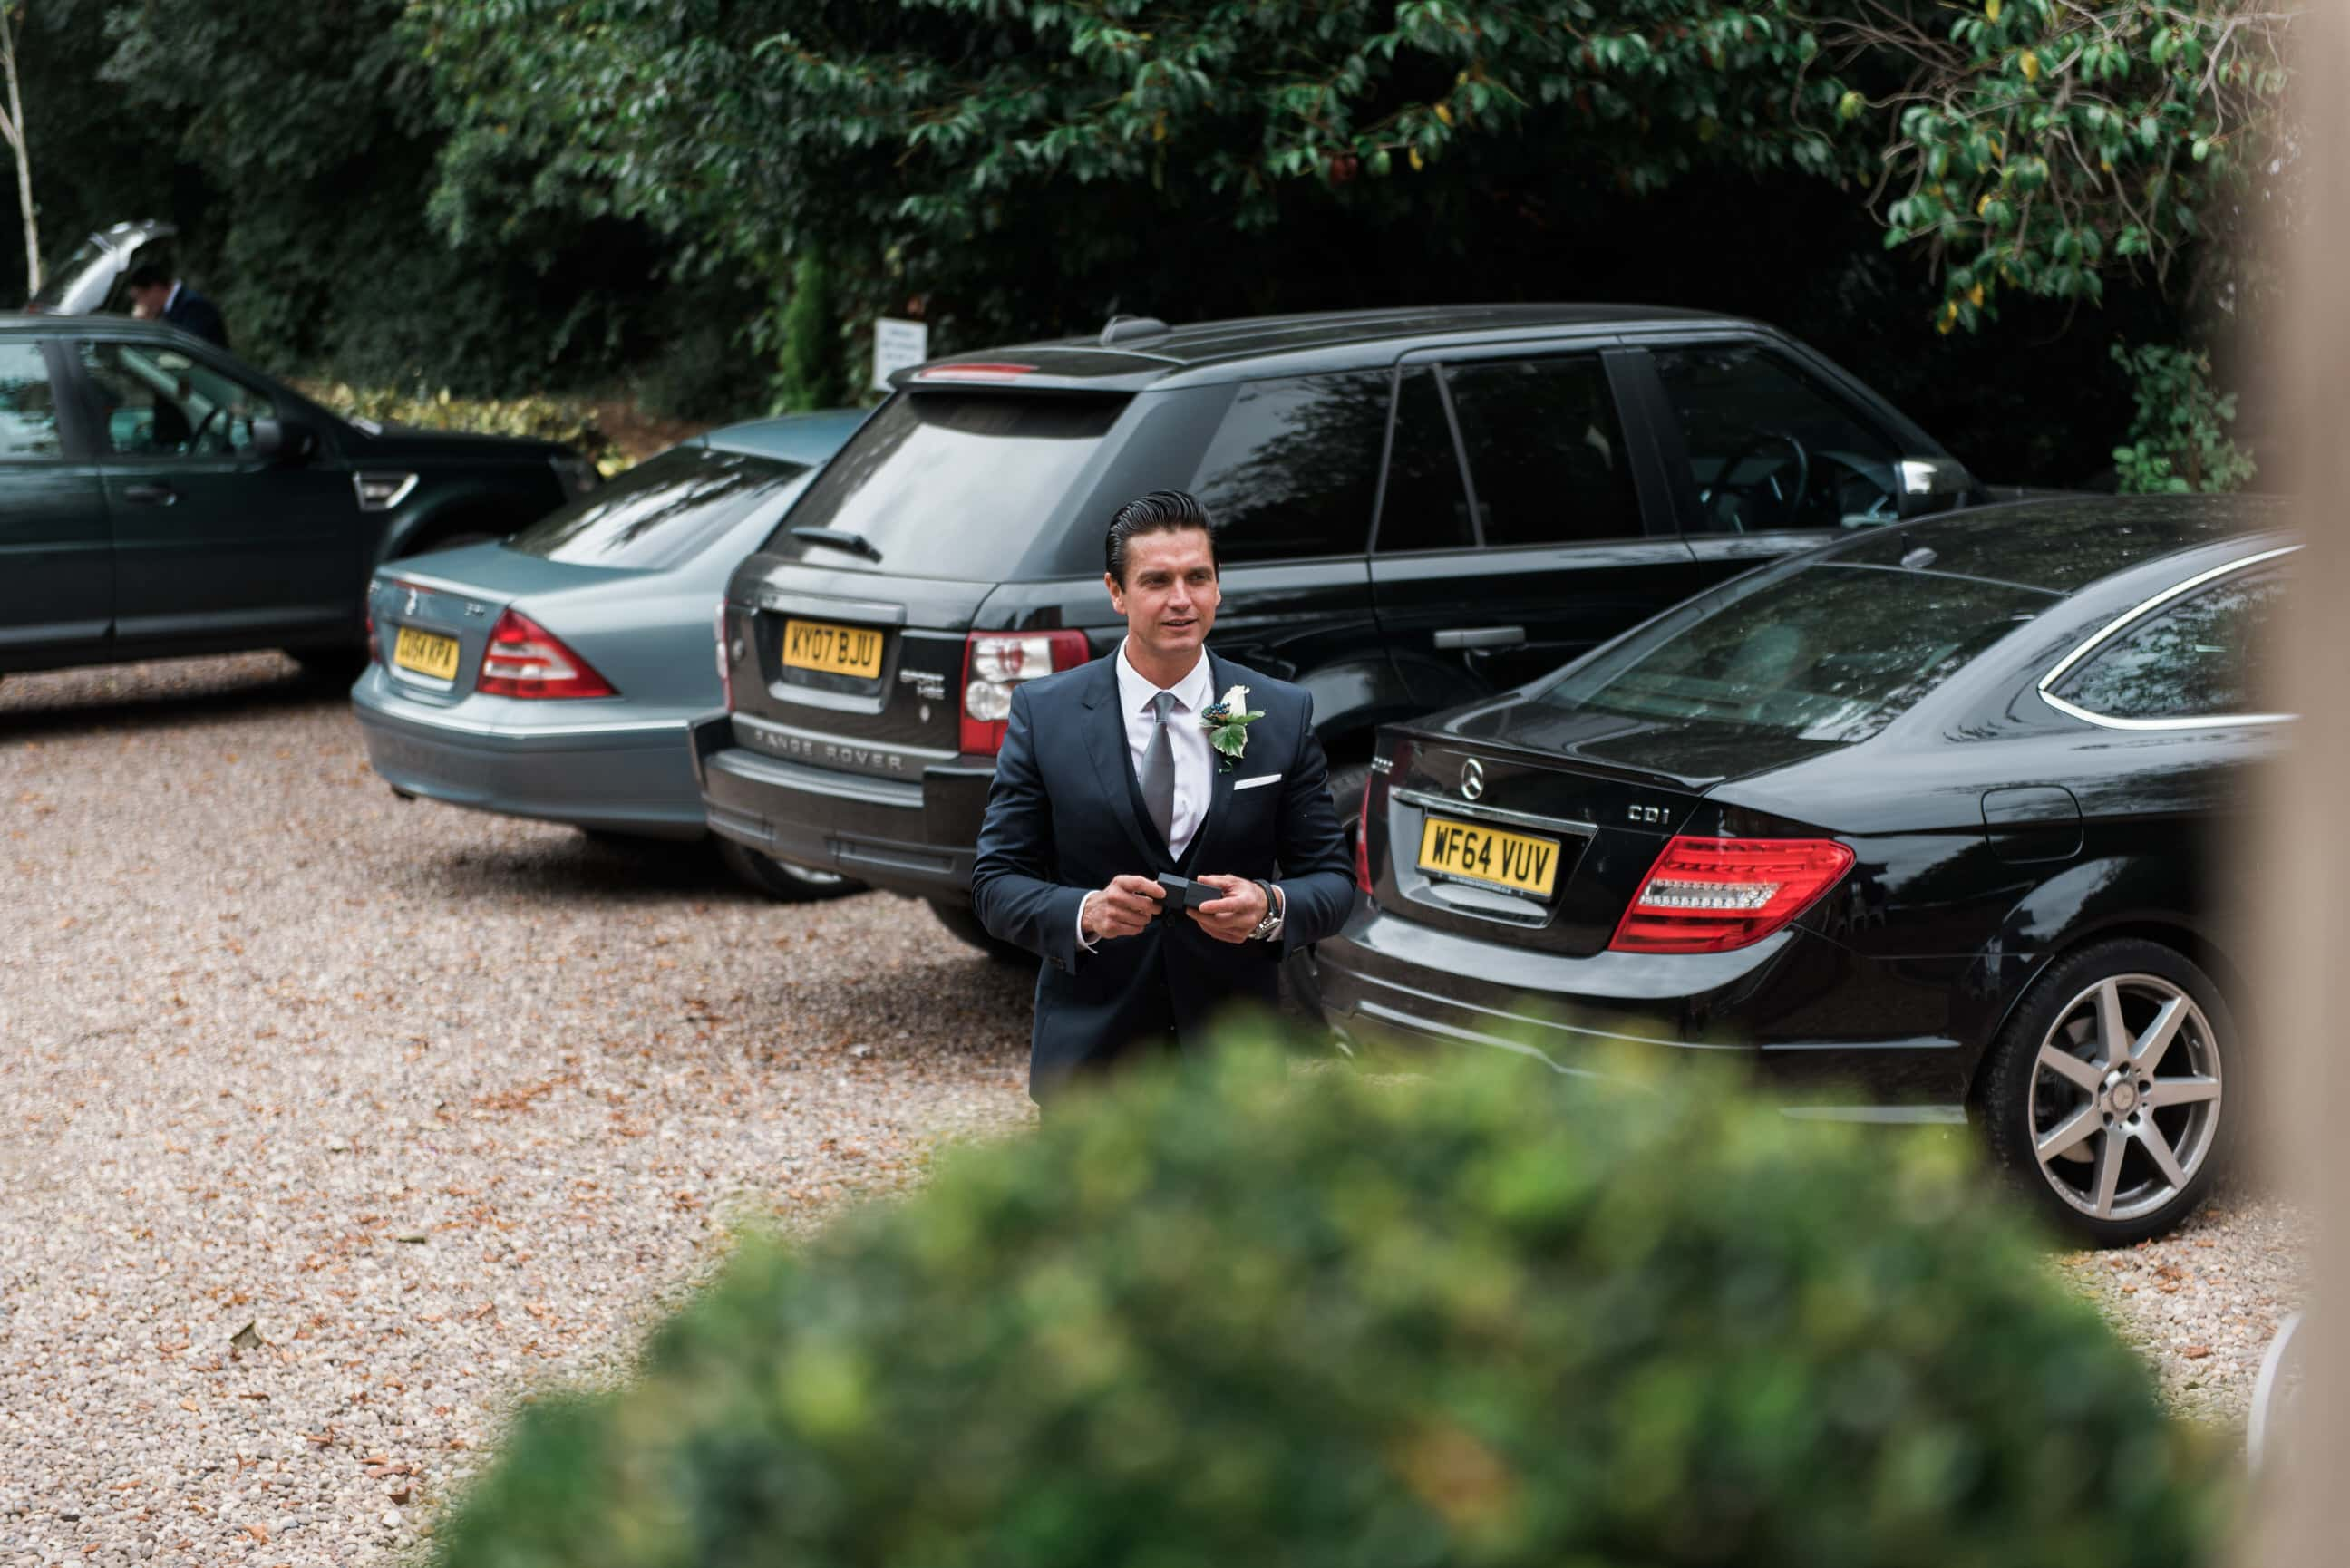 Groom getting out of car